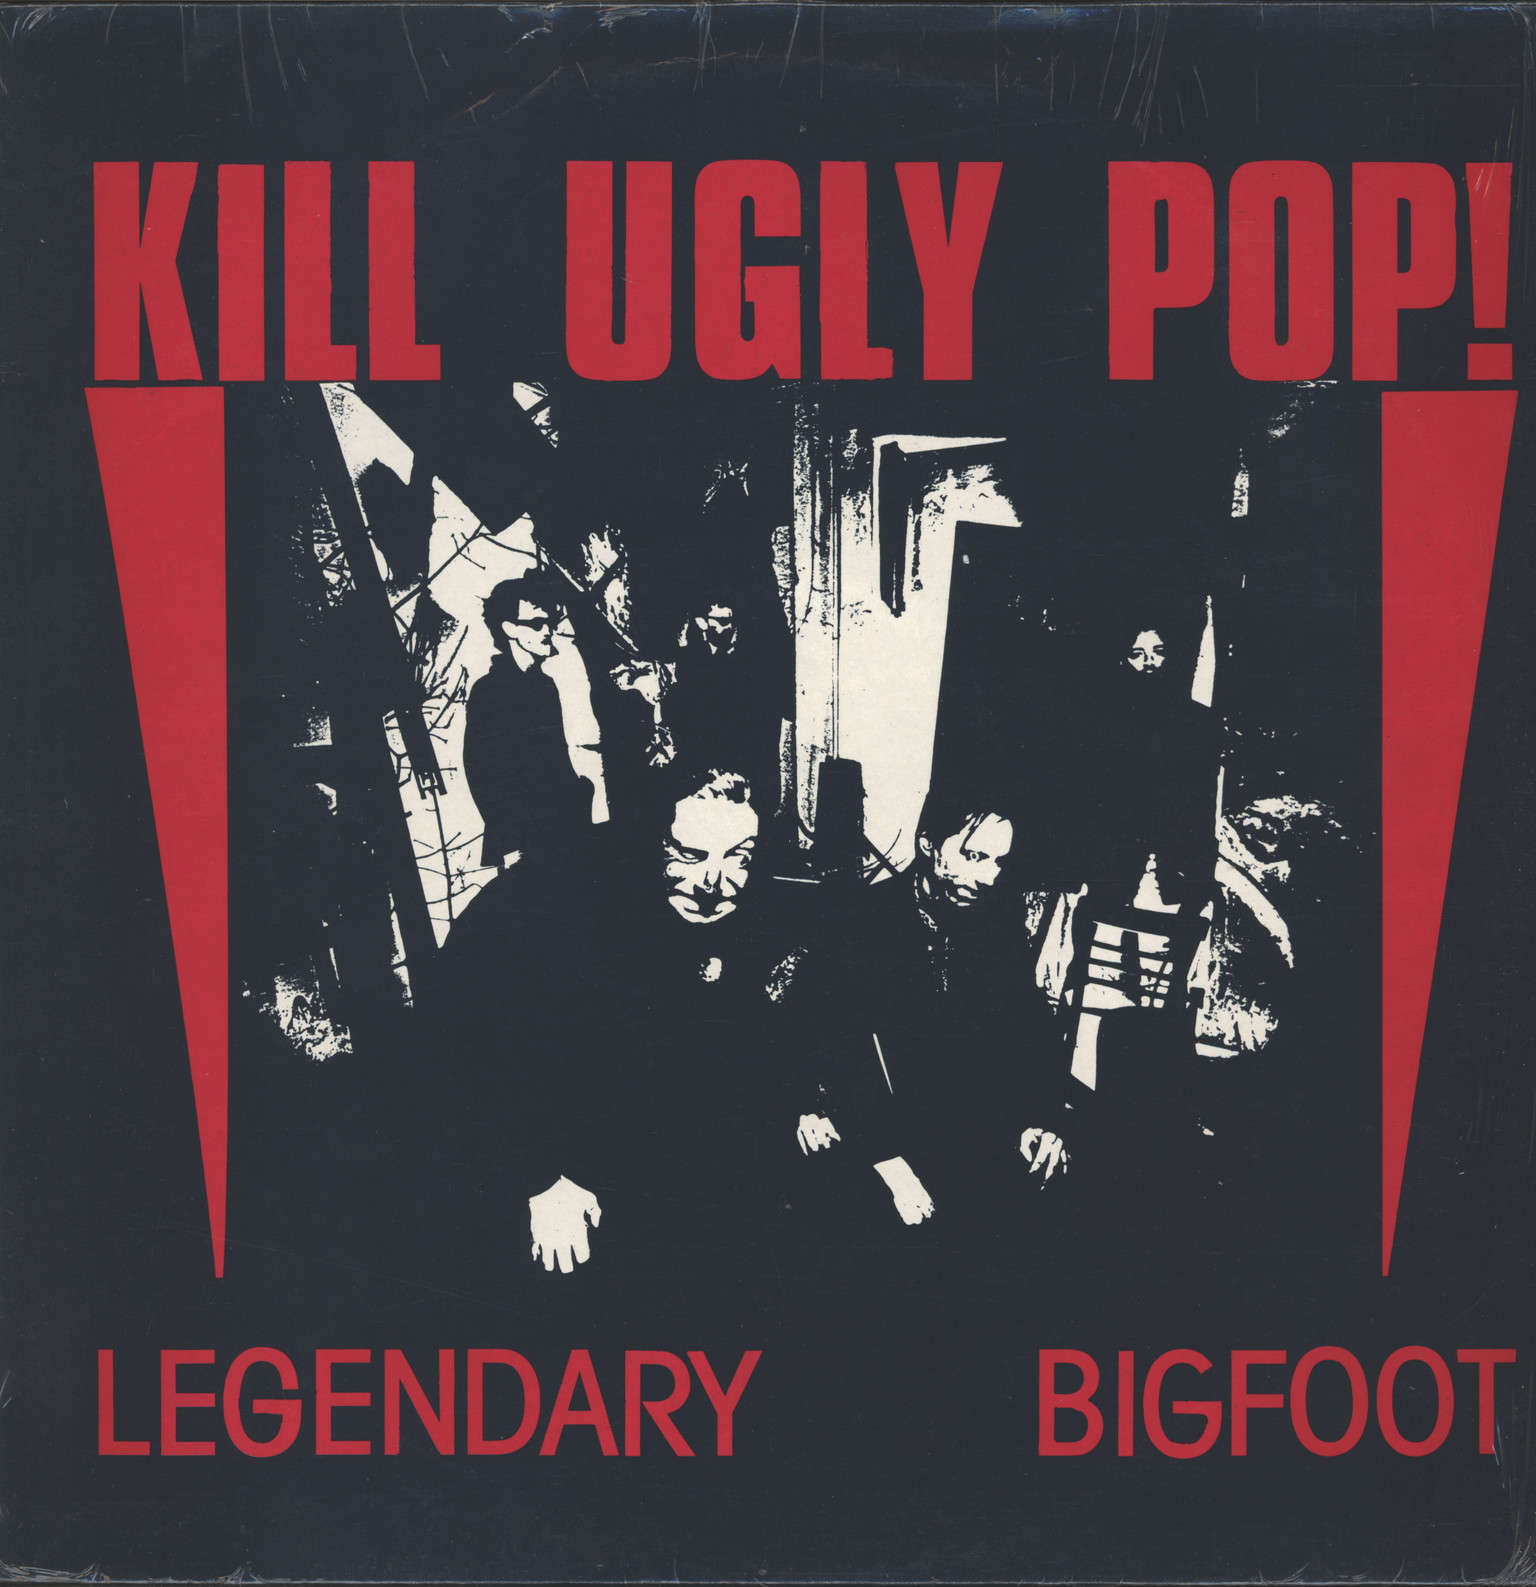 "Kill Ugly Pop: Legendary Bigfoot, 12"" Maxi Single (Vinyl)"